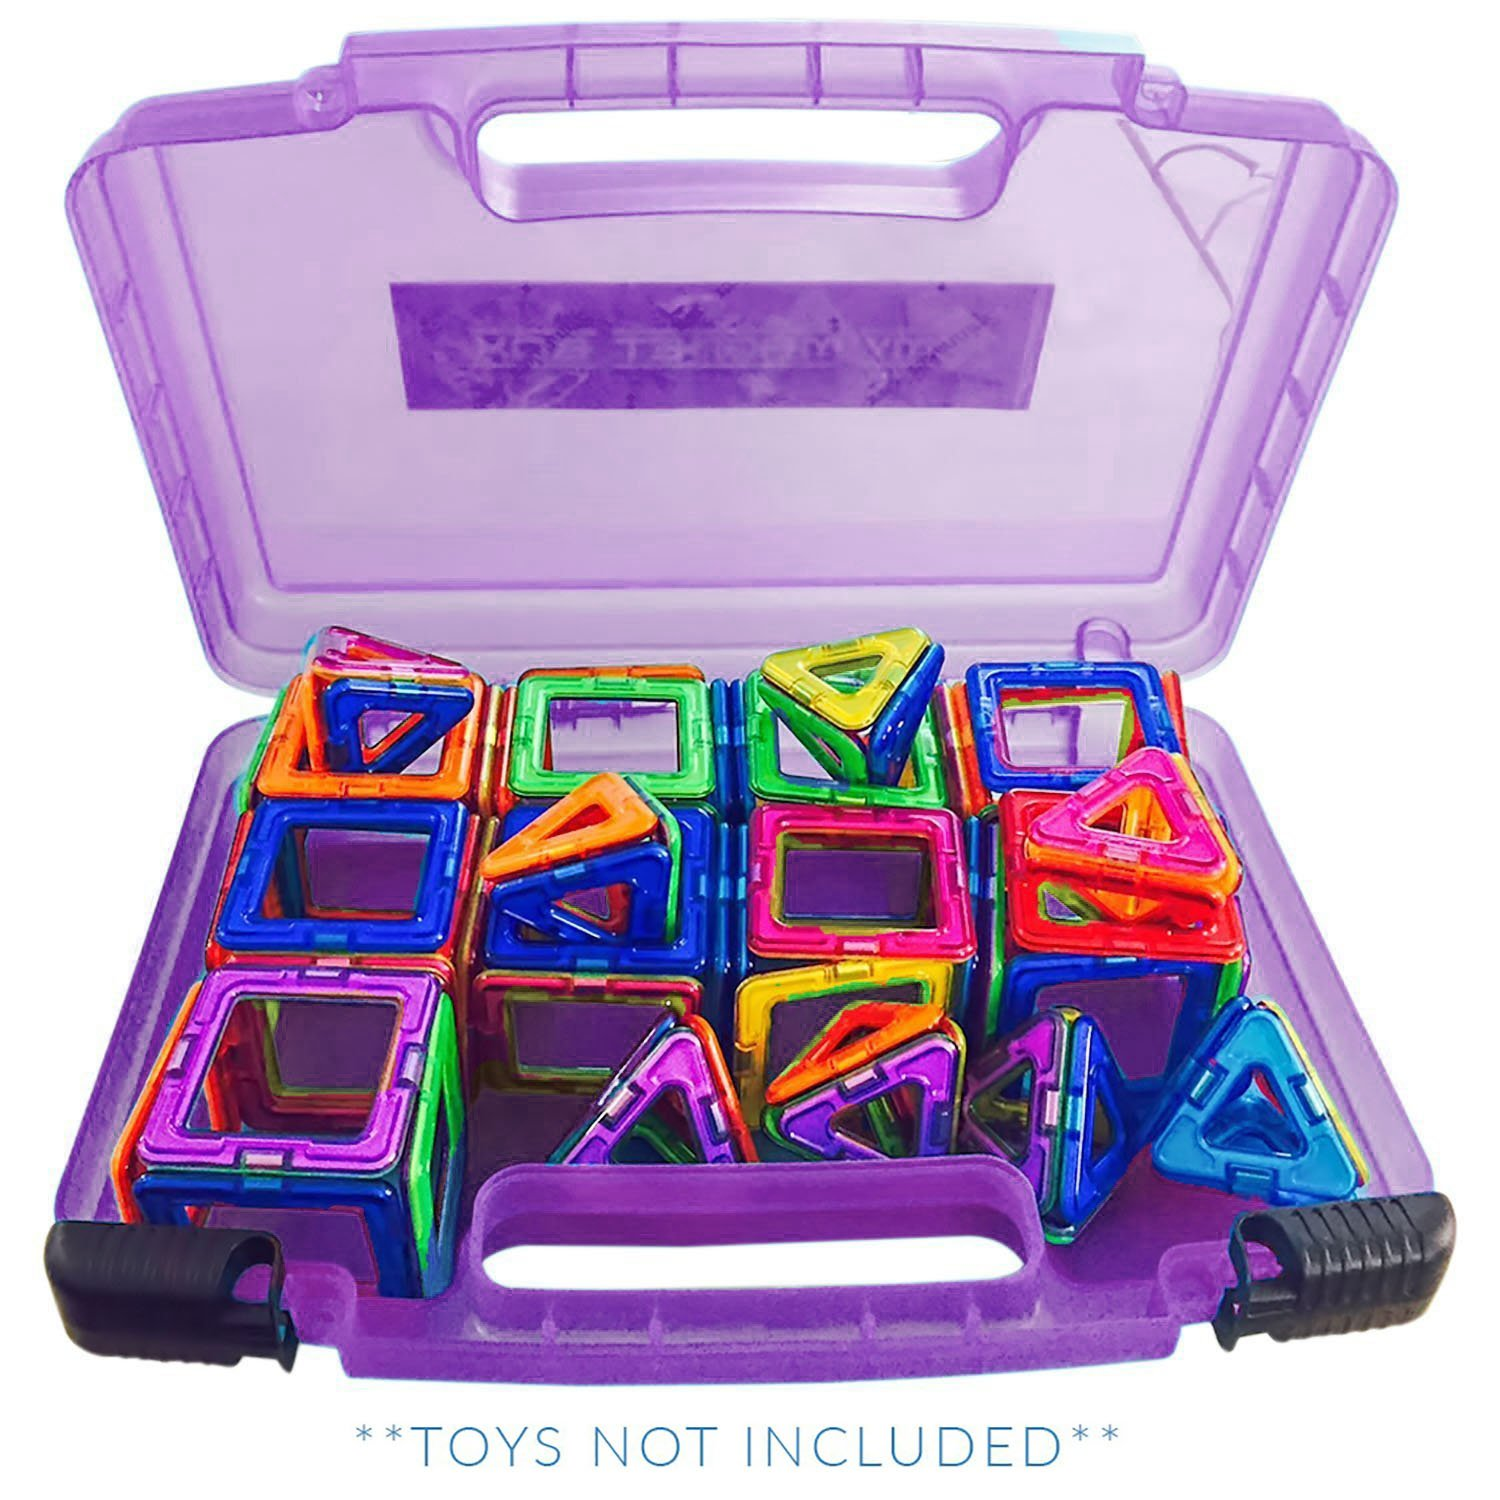 Life Made Better Carrying Organizer Case, Compatible with Magformers and Magna Tiles, This Case is not Created by Magnaformers or Magna Tiles